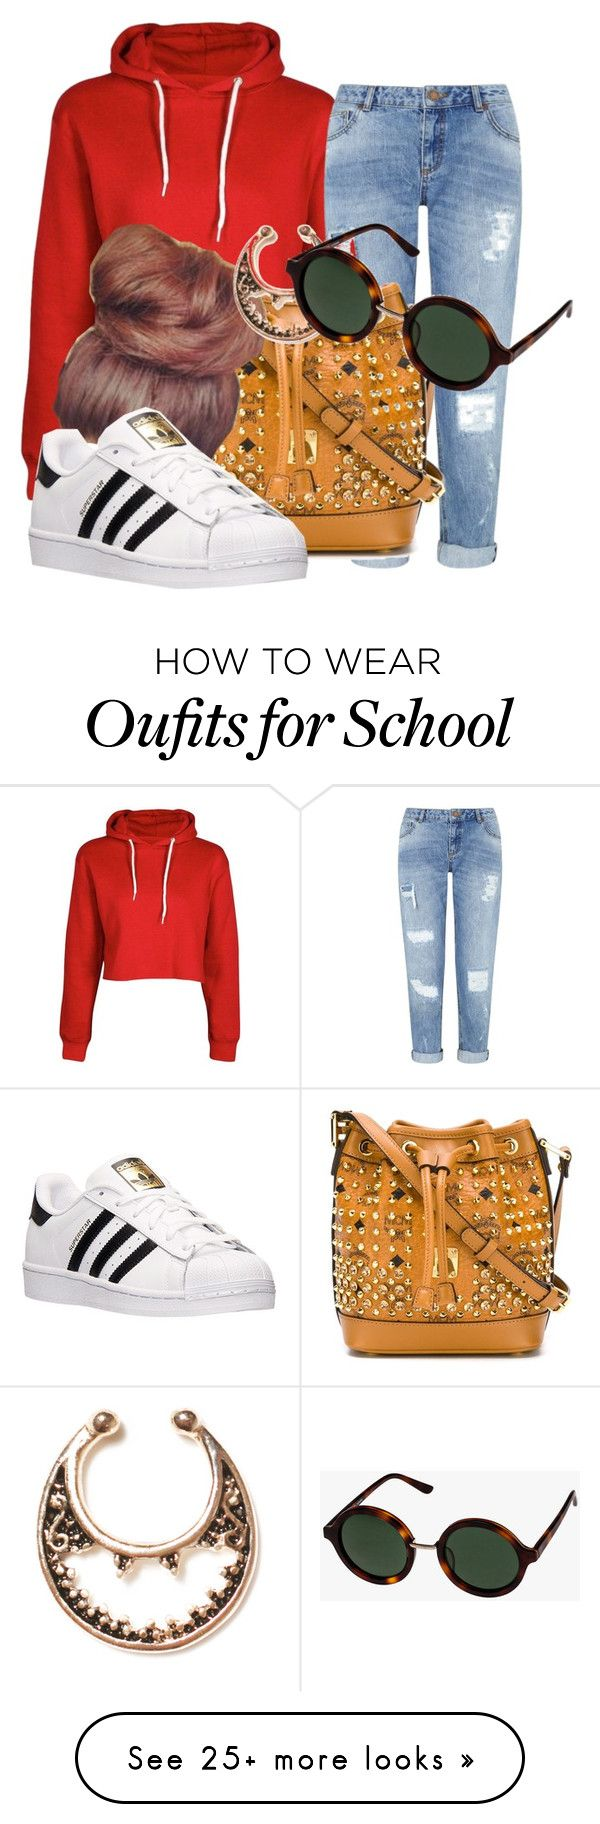 """""""school"""" by xxxpolypiexxx on Polyvore featuring Miss Selfridge, MCM, adidas and sass & bide"""